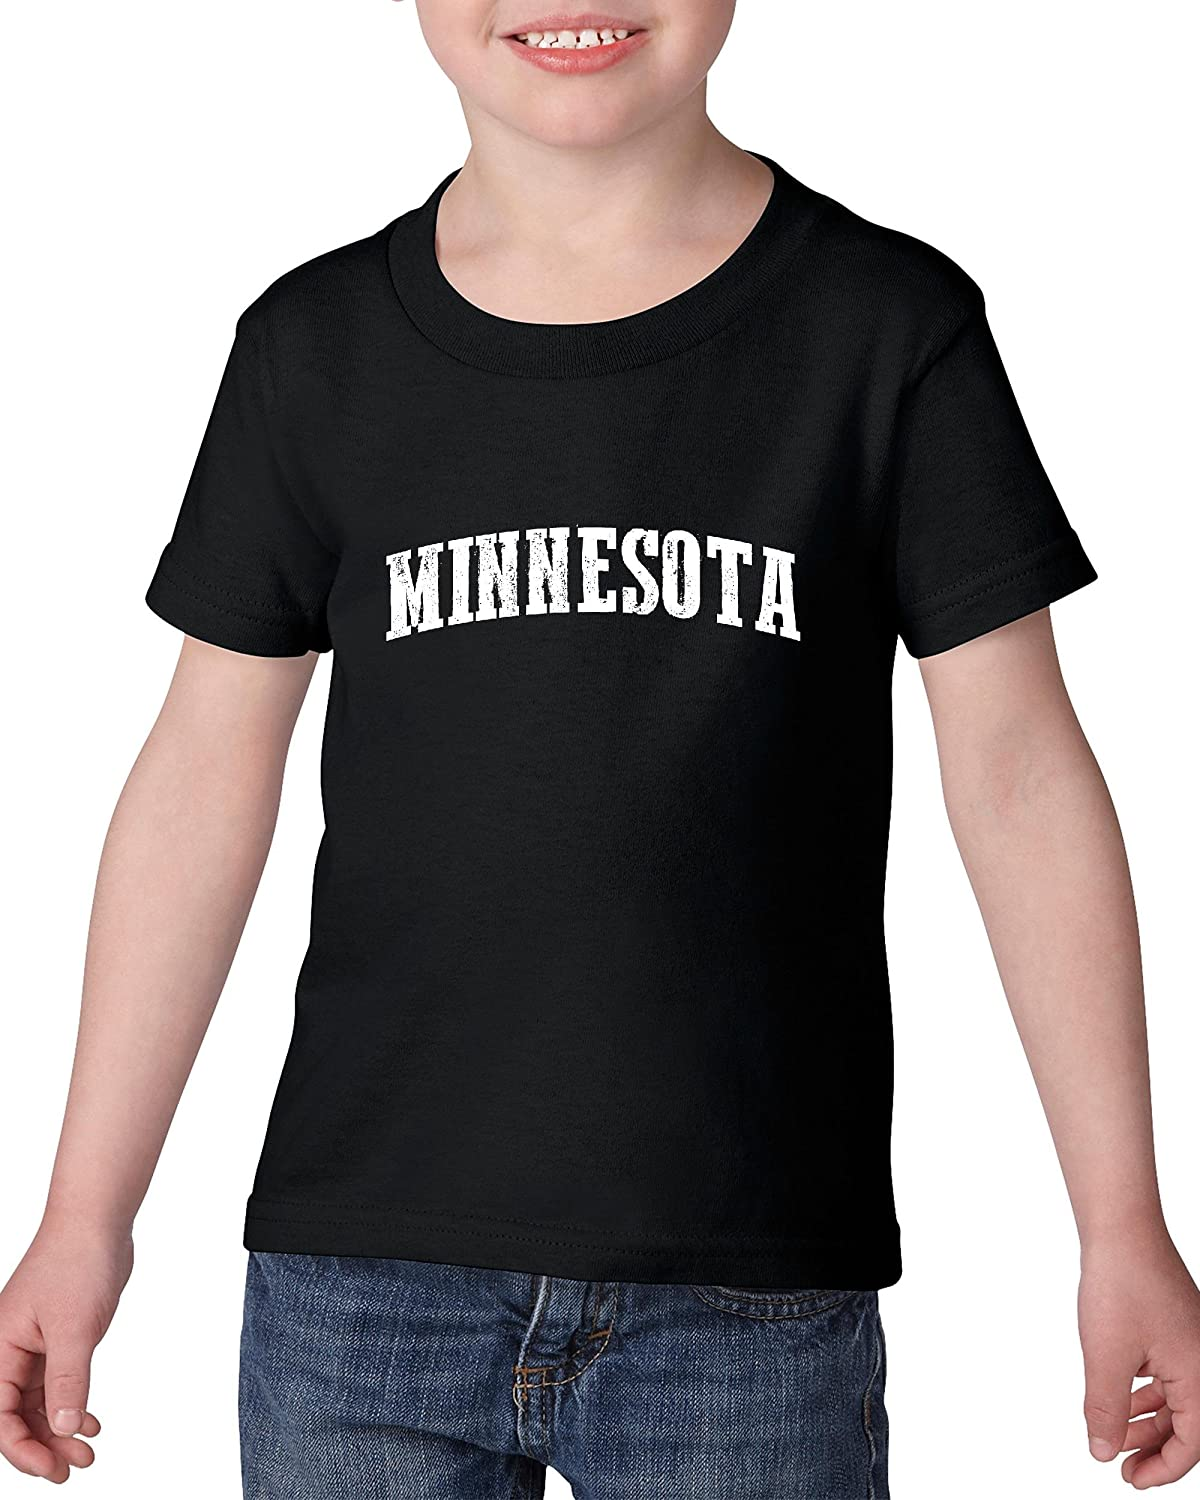 Amazon.com: Ugo MN Map Minneapolis Flag Golden Gophers Home University of Minnesota Heavy Cotton Toddler Kids T-Shirt Tee Clothing: Clothing